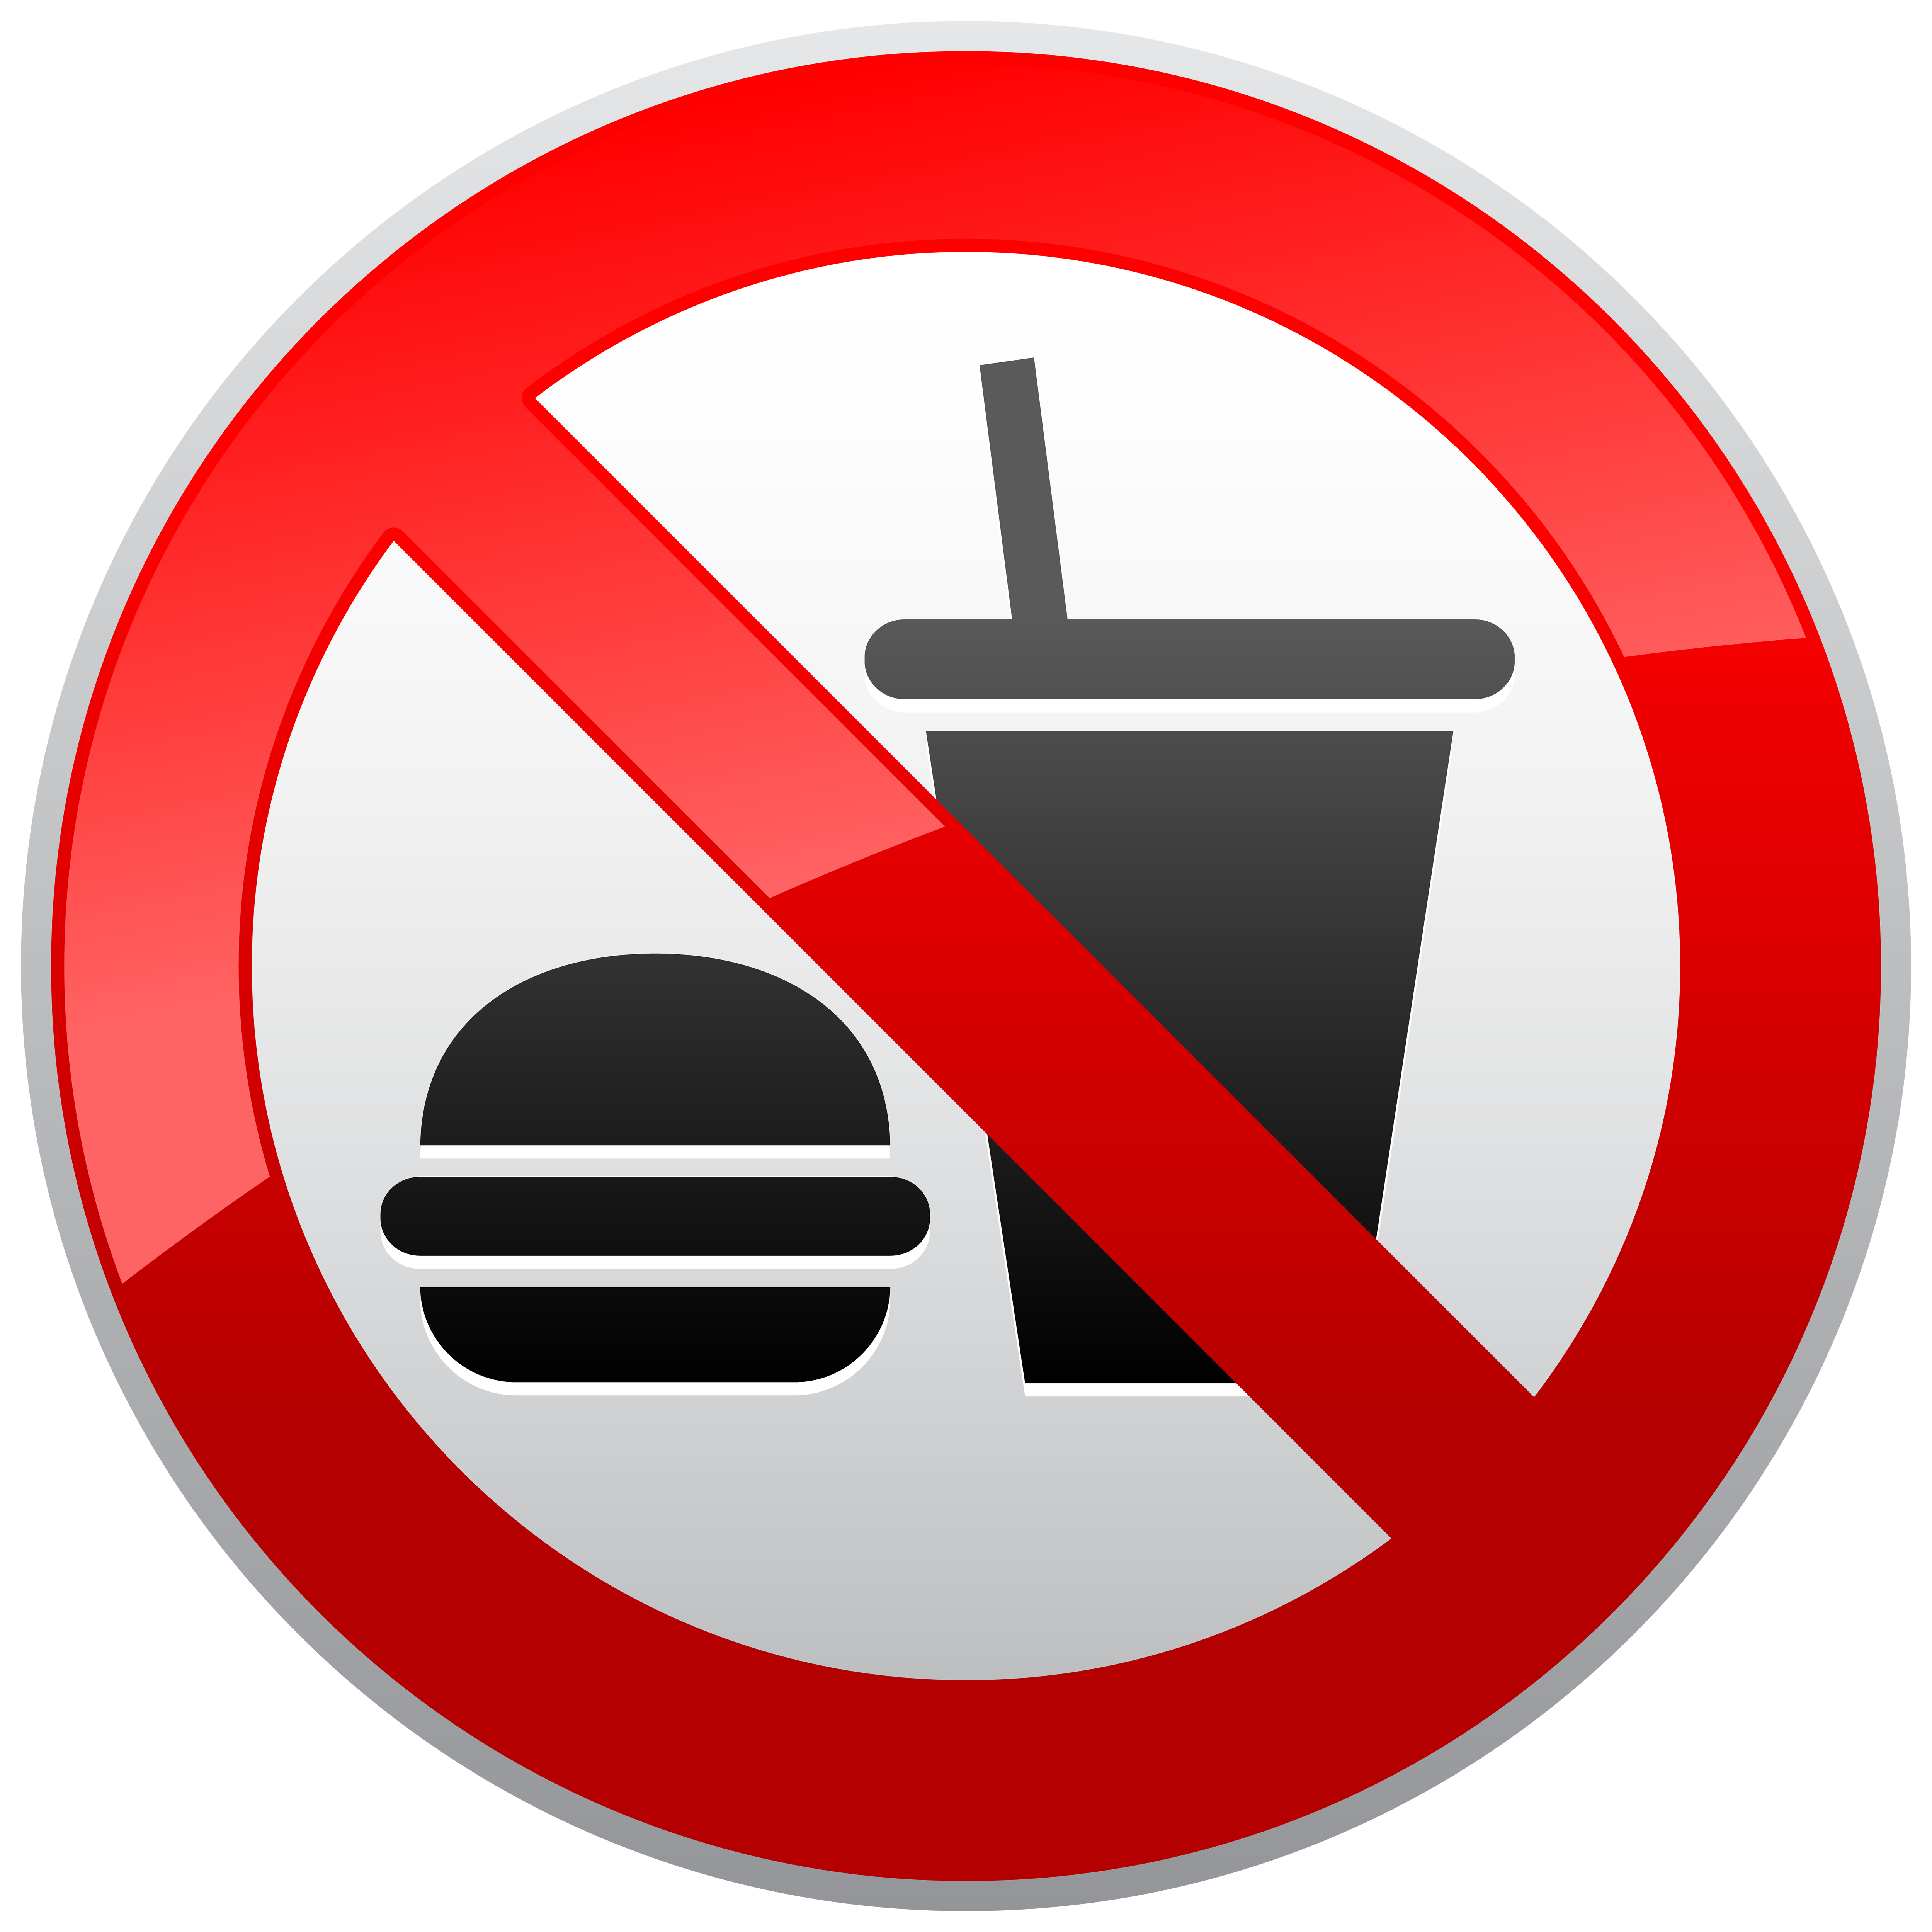 No food no drink sign png